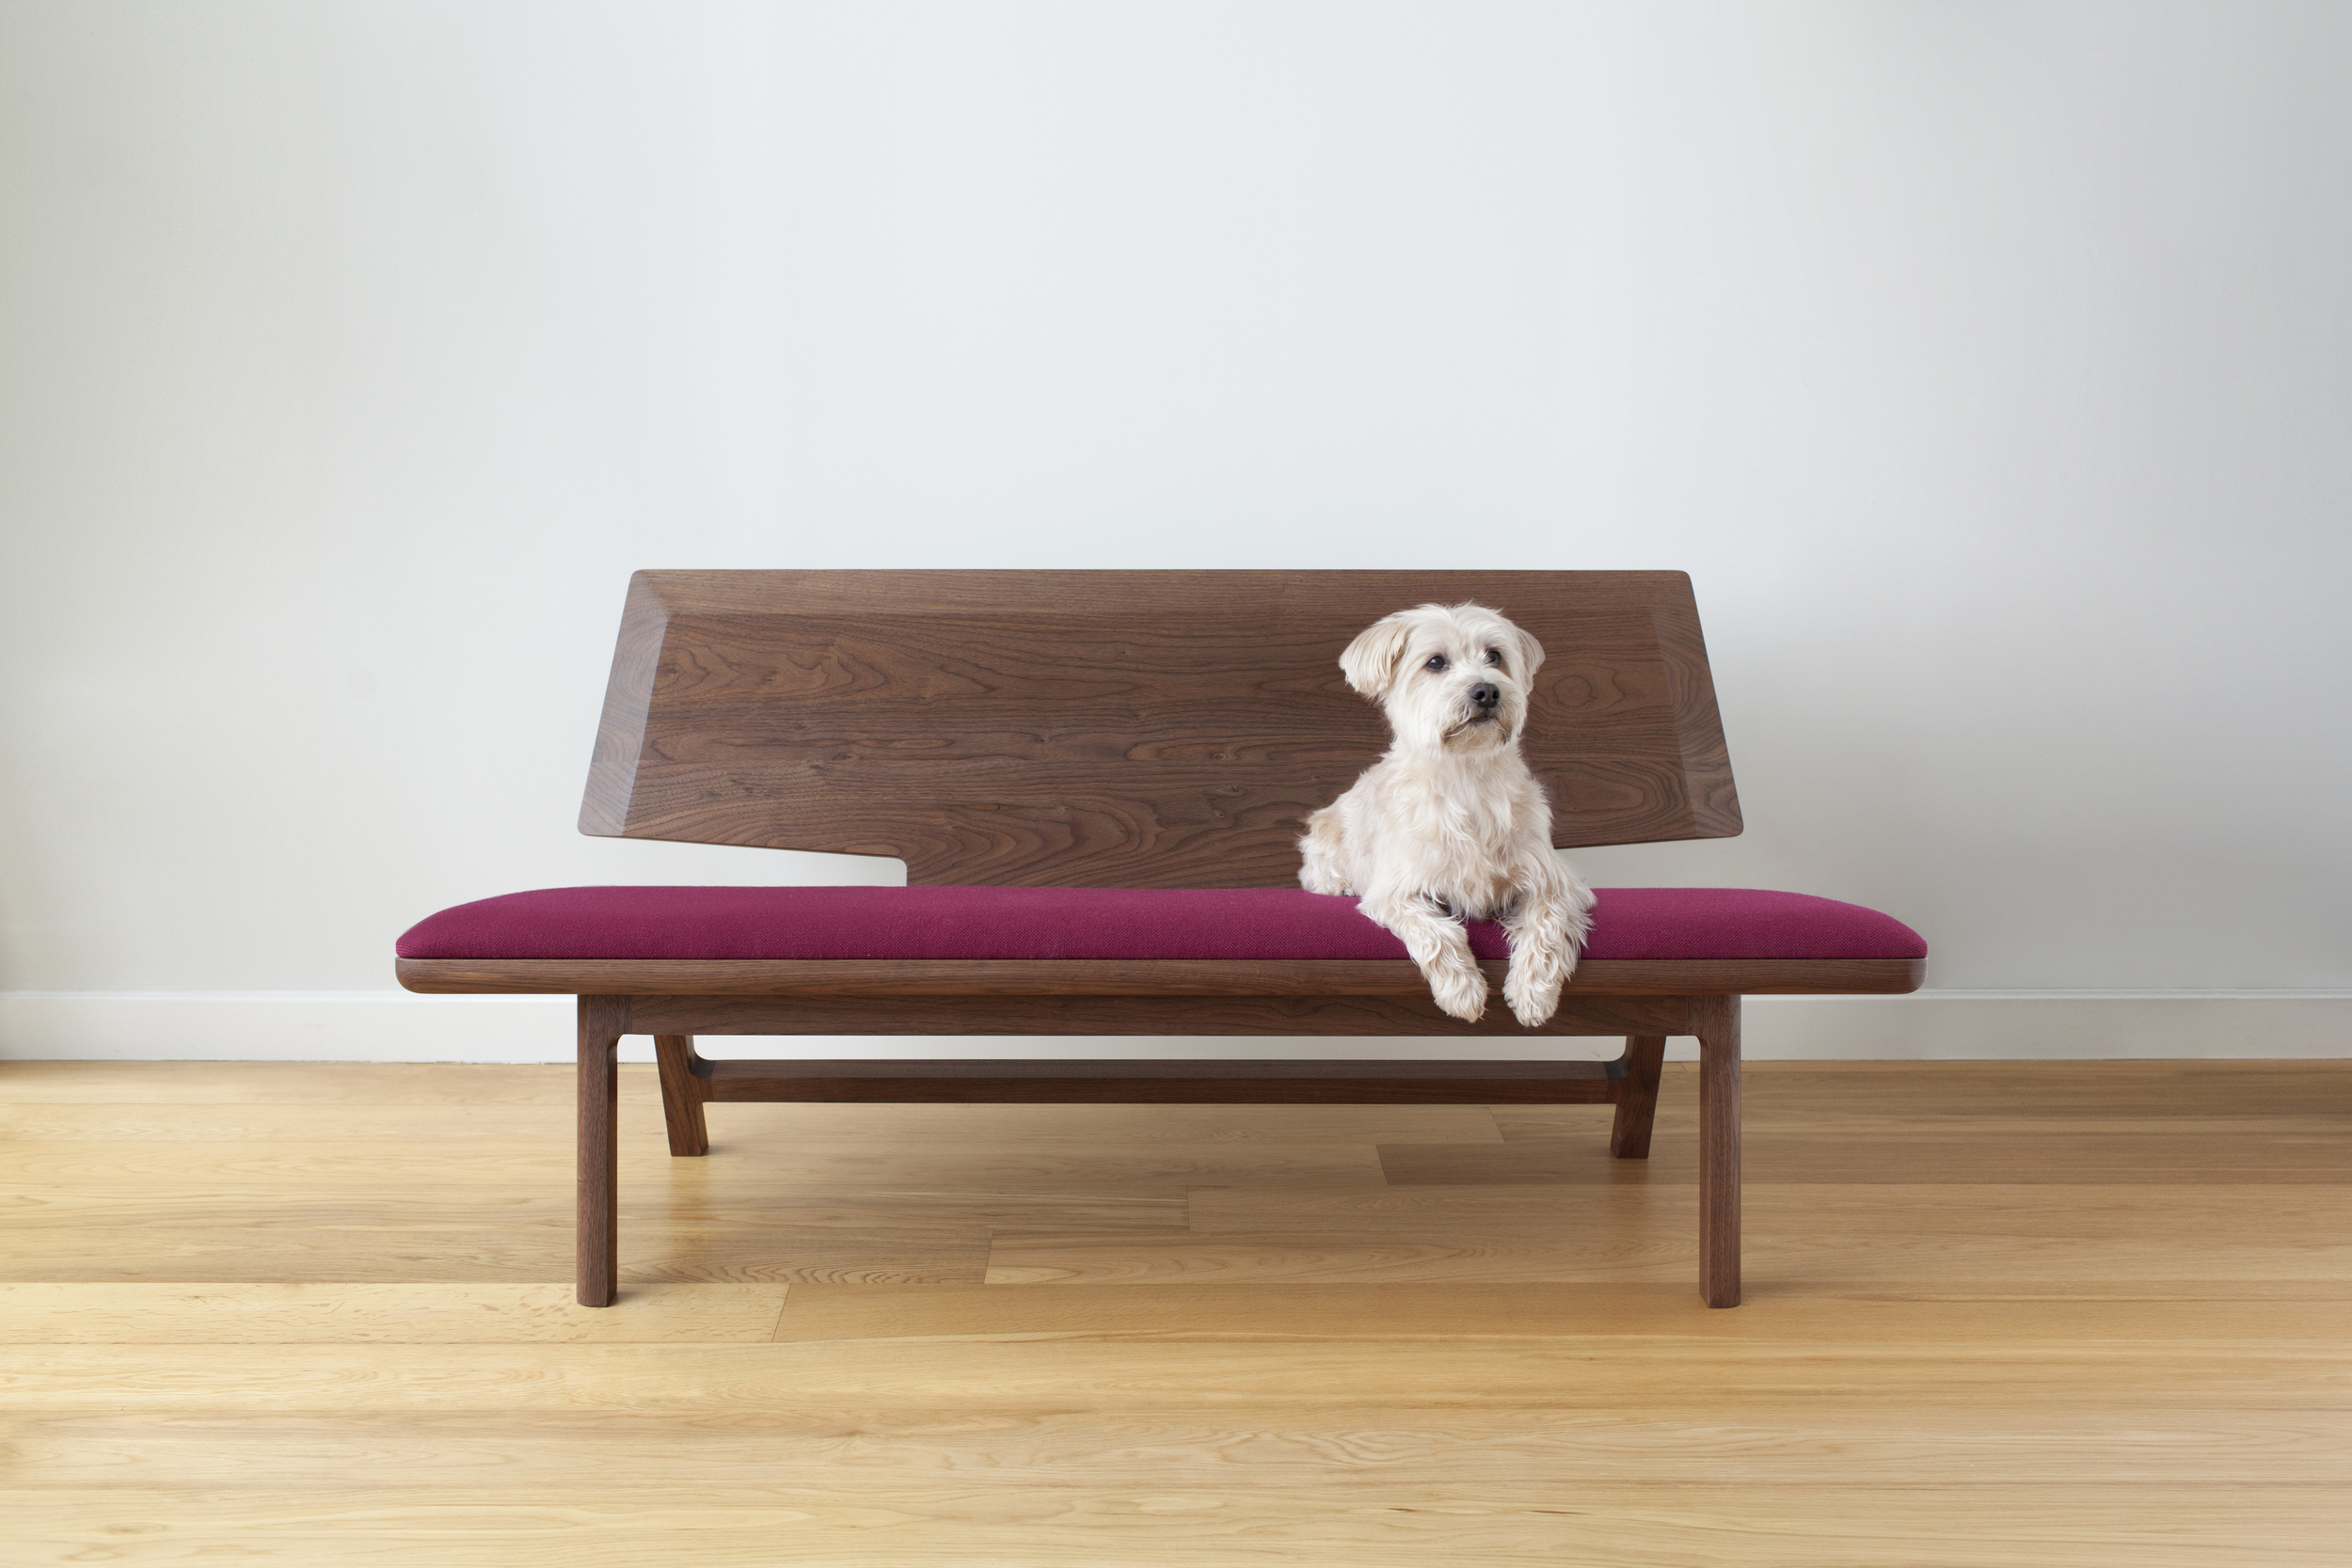 Coventree reclined bench - $4600